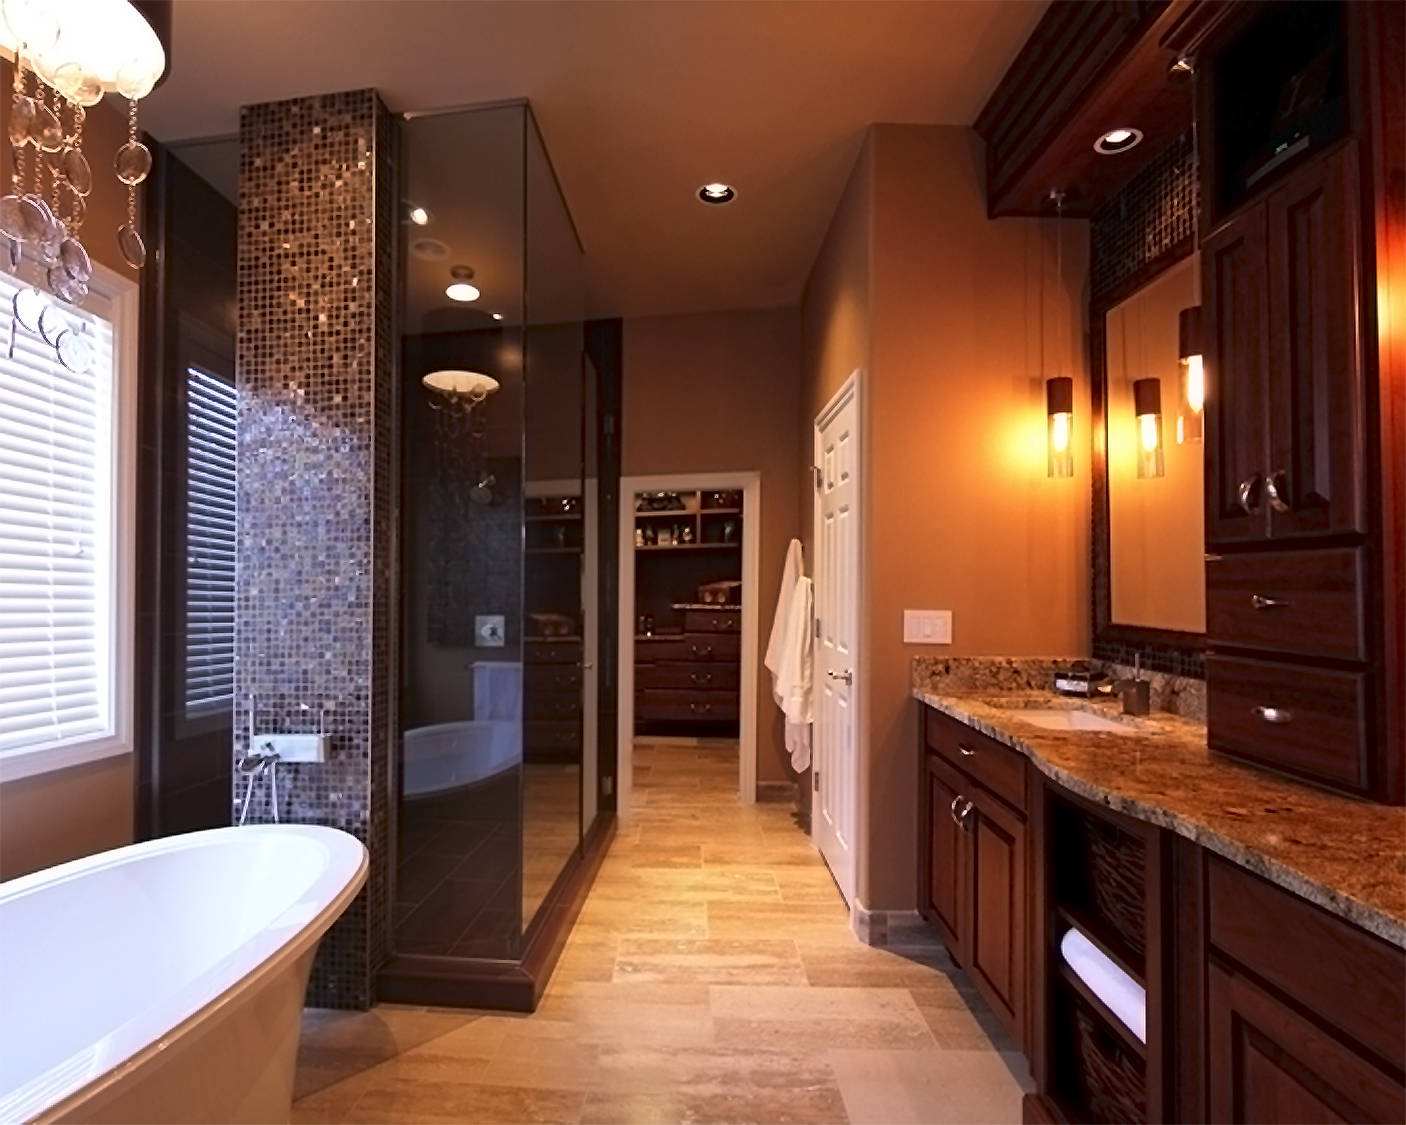 Interesting Addition of Decorative Tiled Wall and Pendant Lamp over Bathtub to Complete Remodeling